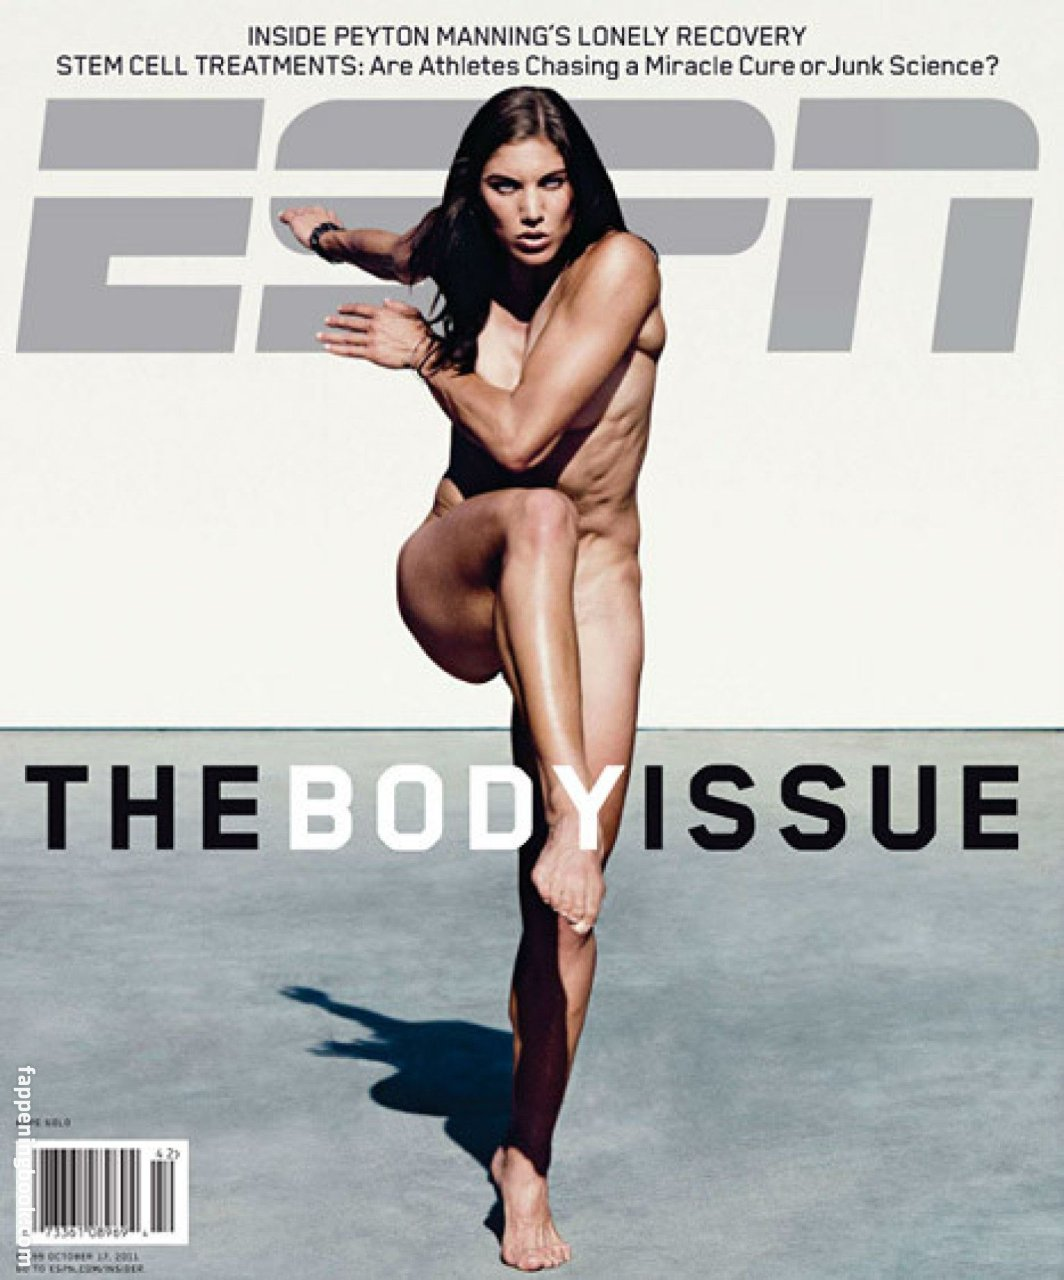 The hope fappening solo Hope Solo